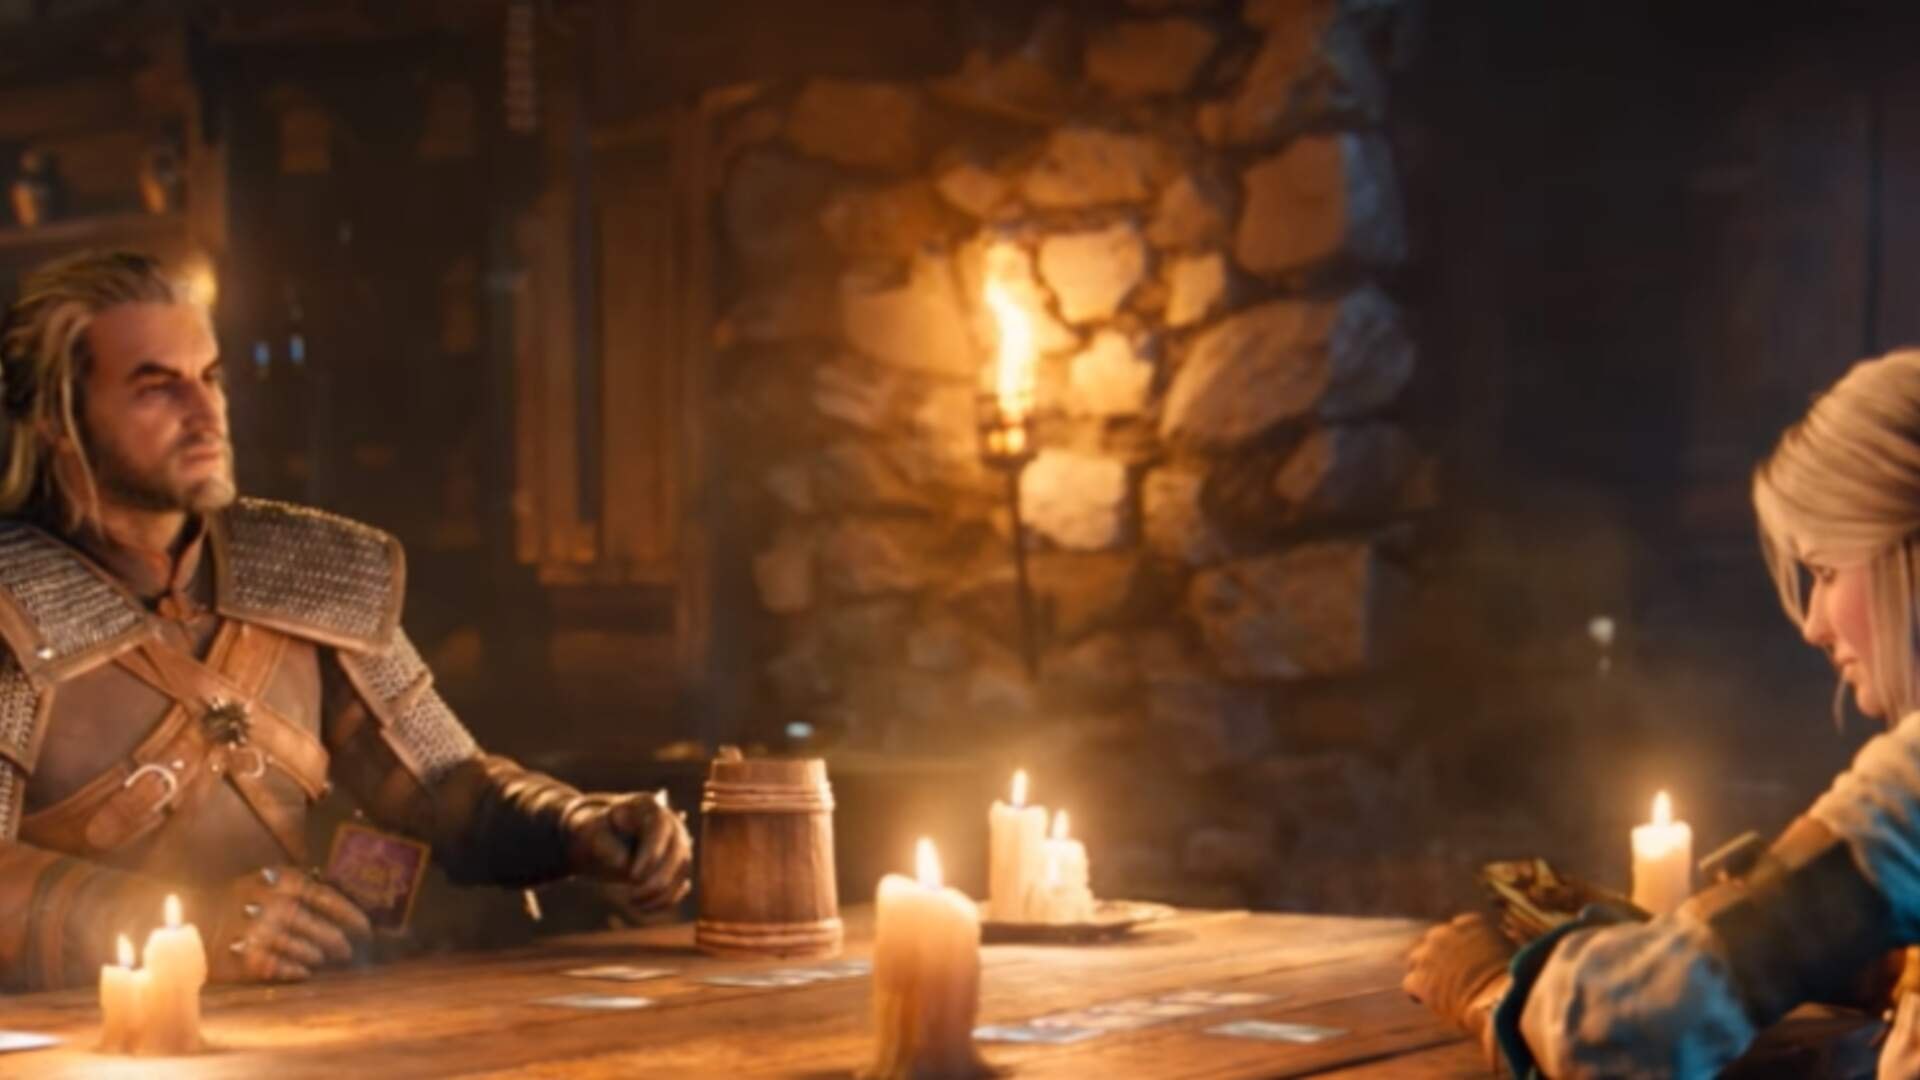 The Gwent Cinematic Trailer is All Kinds of Rock n' Roll